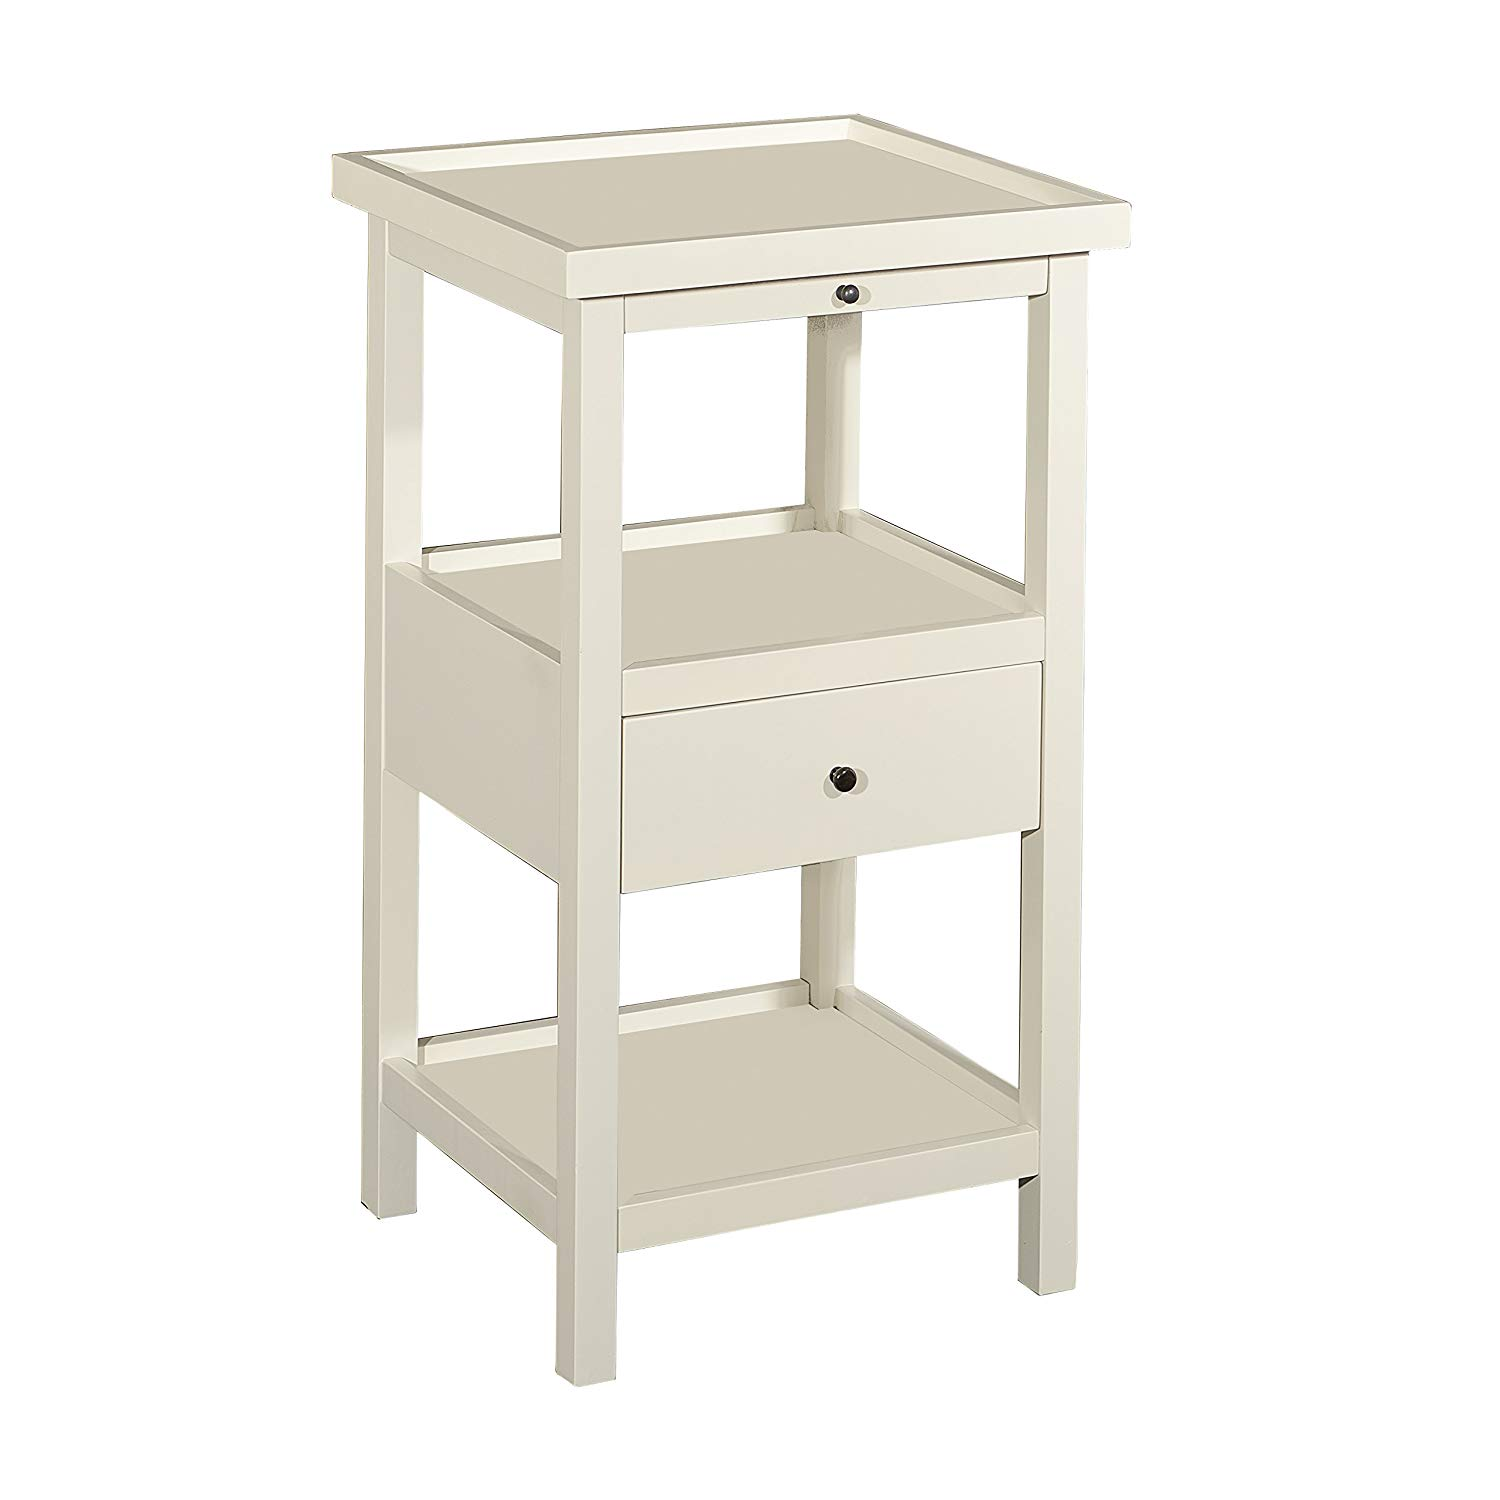 powell furniture palmer white shelf side table small accent with shelves kitchen dining mercers outdoor fireplace livingroom tables west elm patio and chairs breakfast room